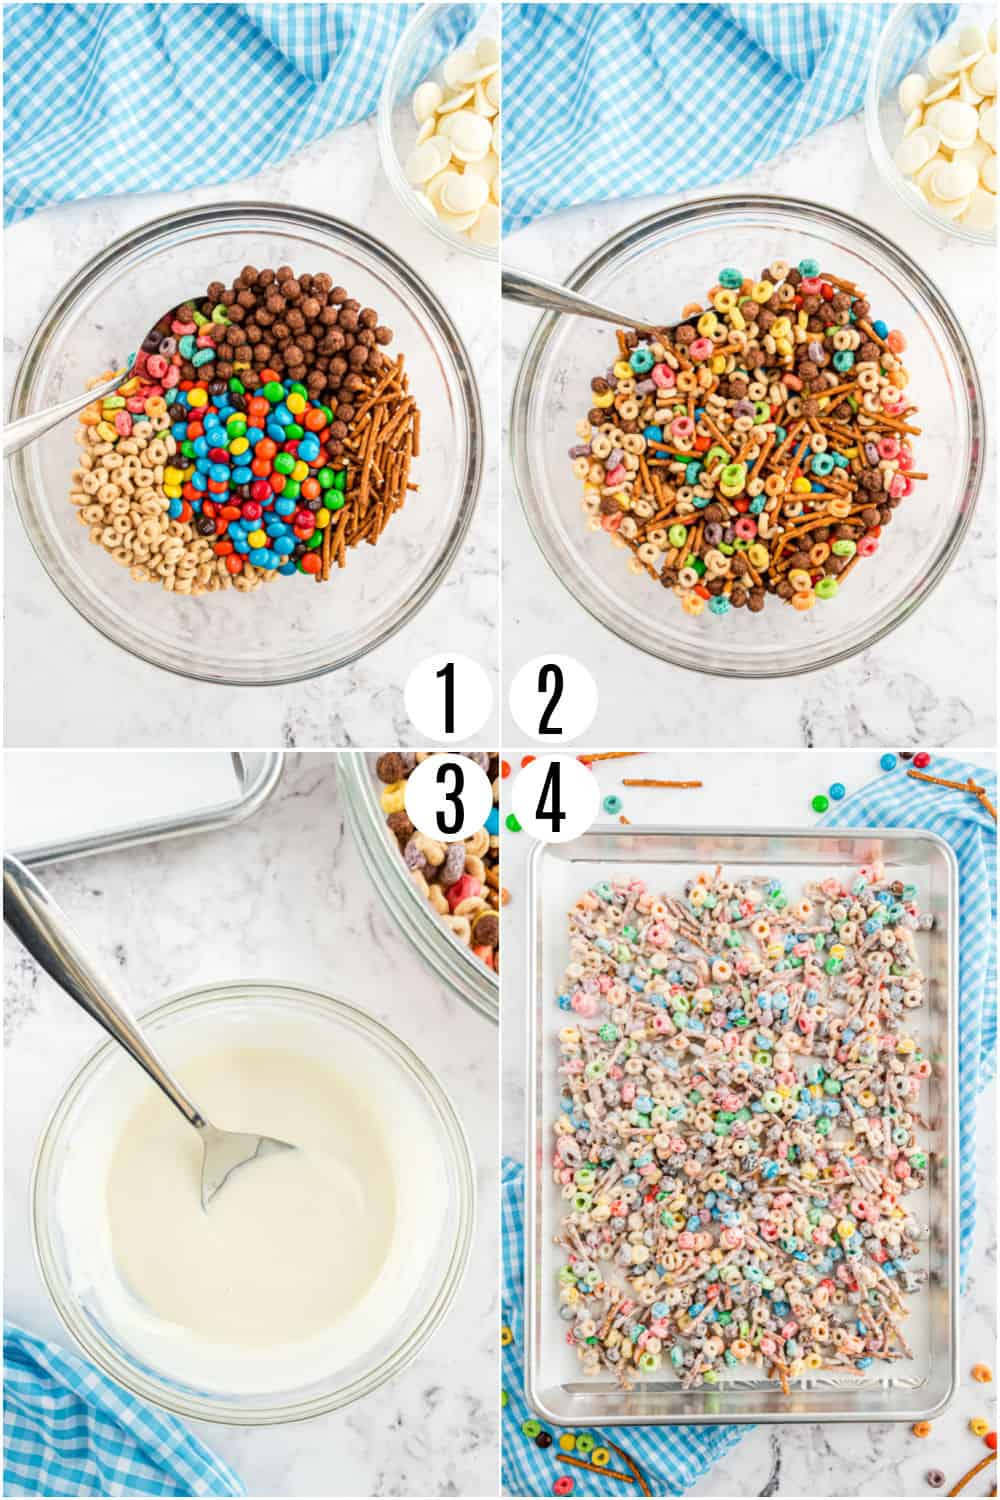 Step by step photos showing how to make white trash candy.